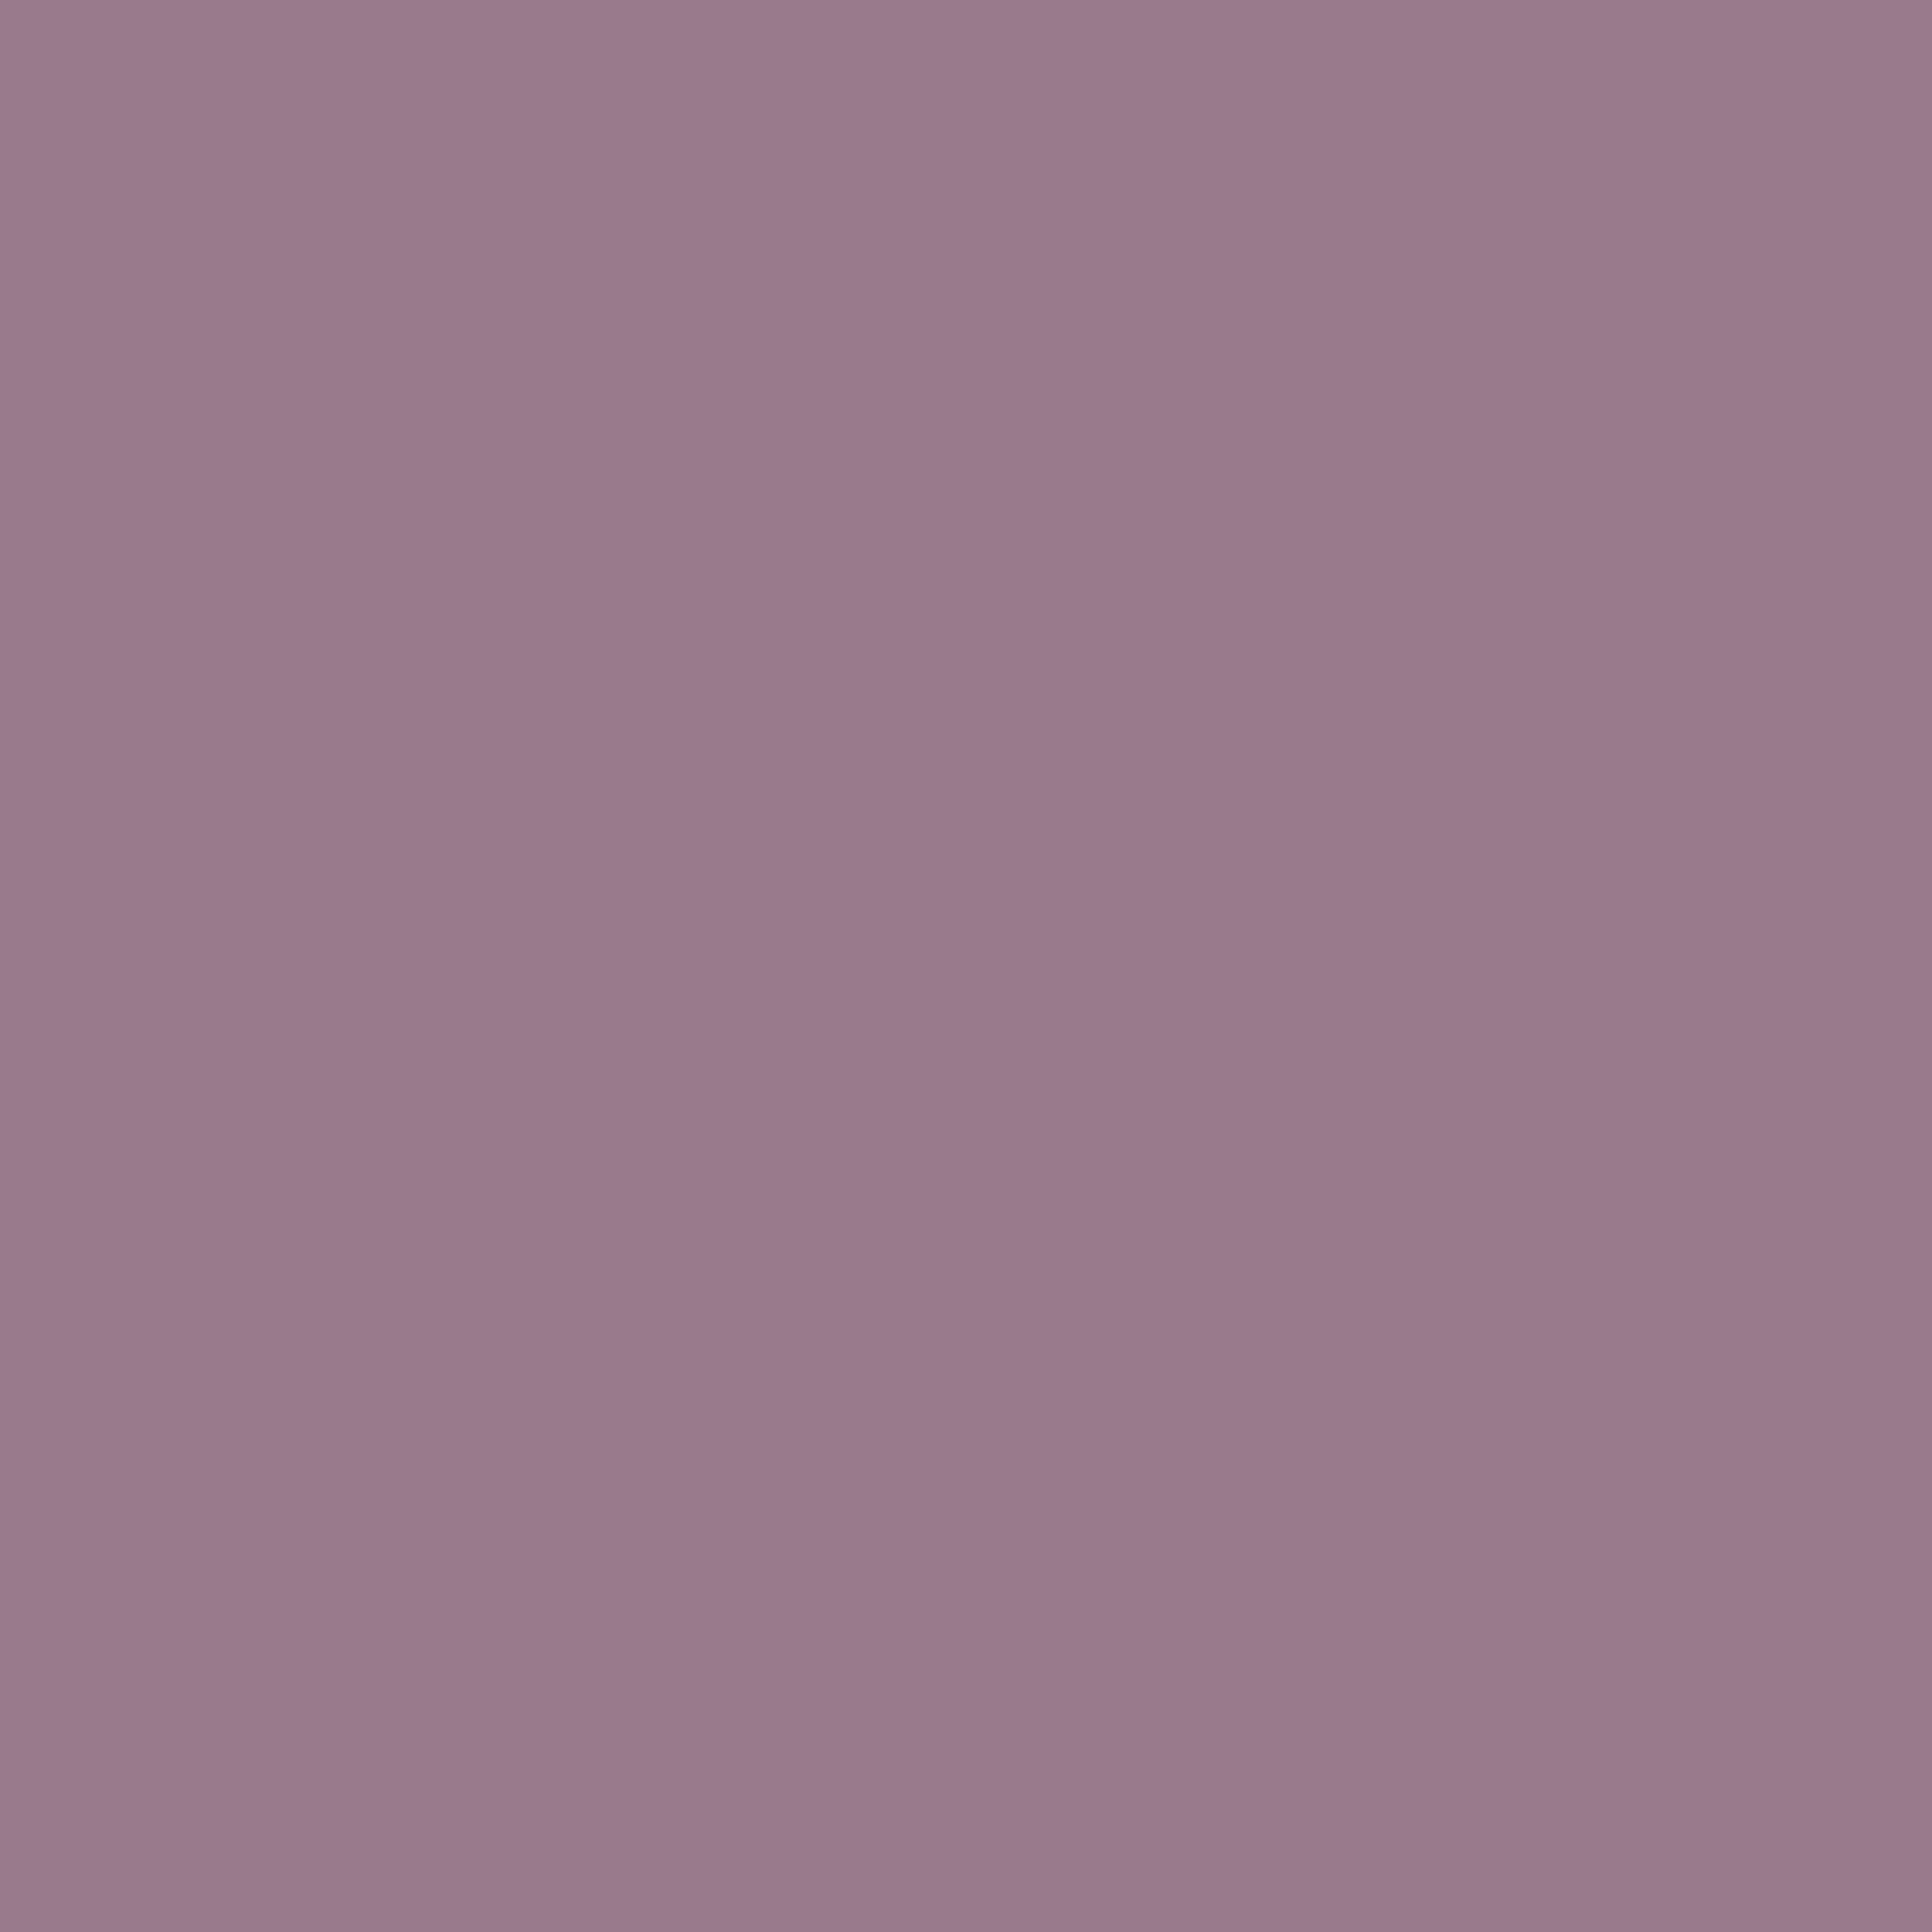 3600x3600 Mountbatten Pink Solid Color Background